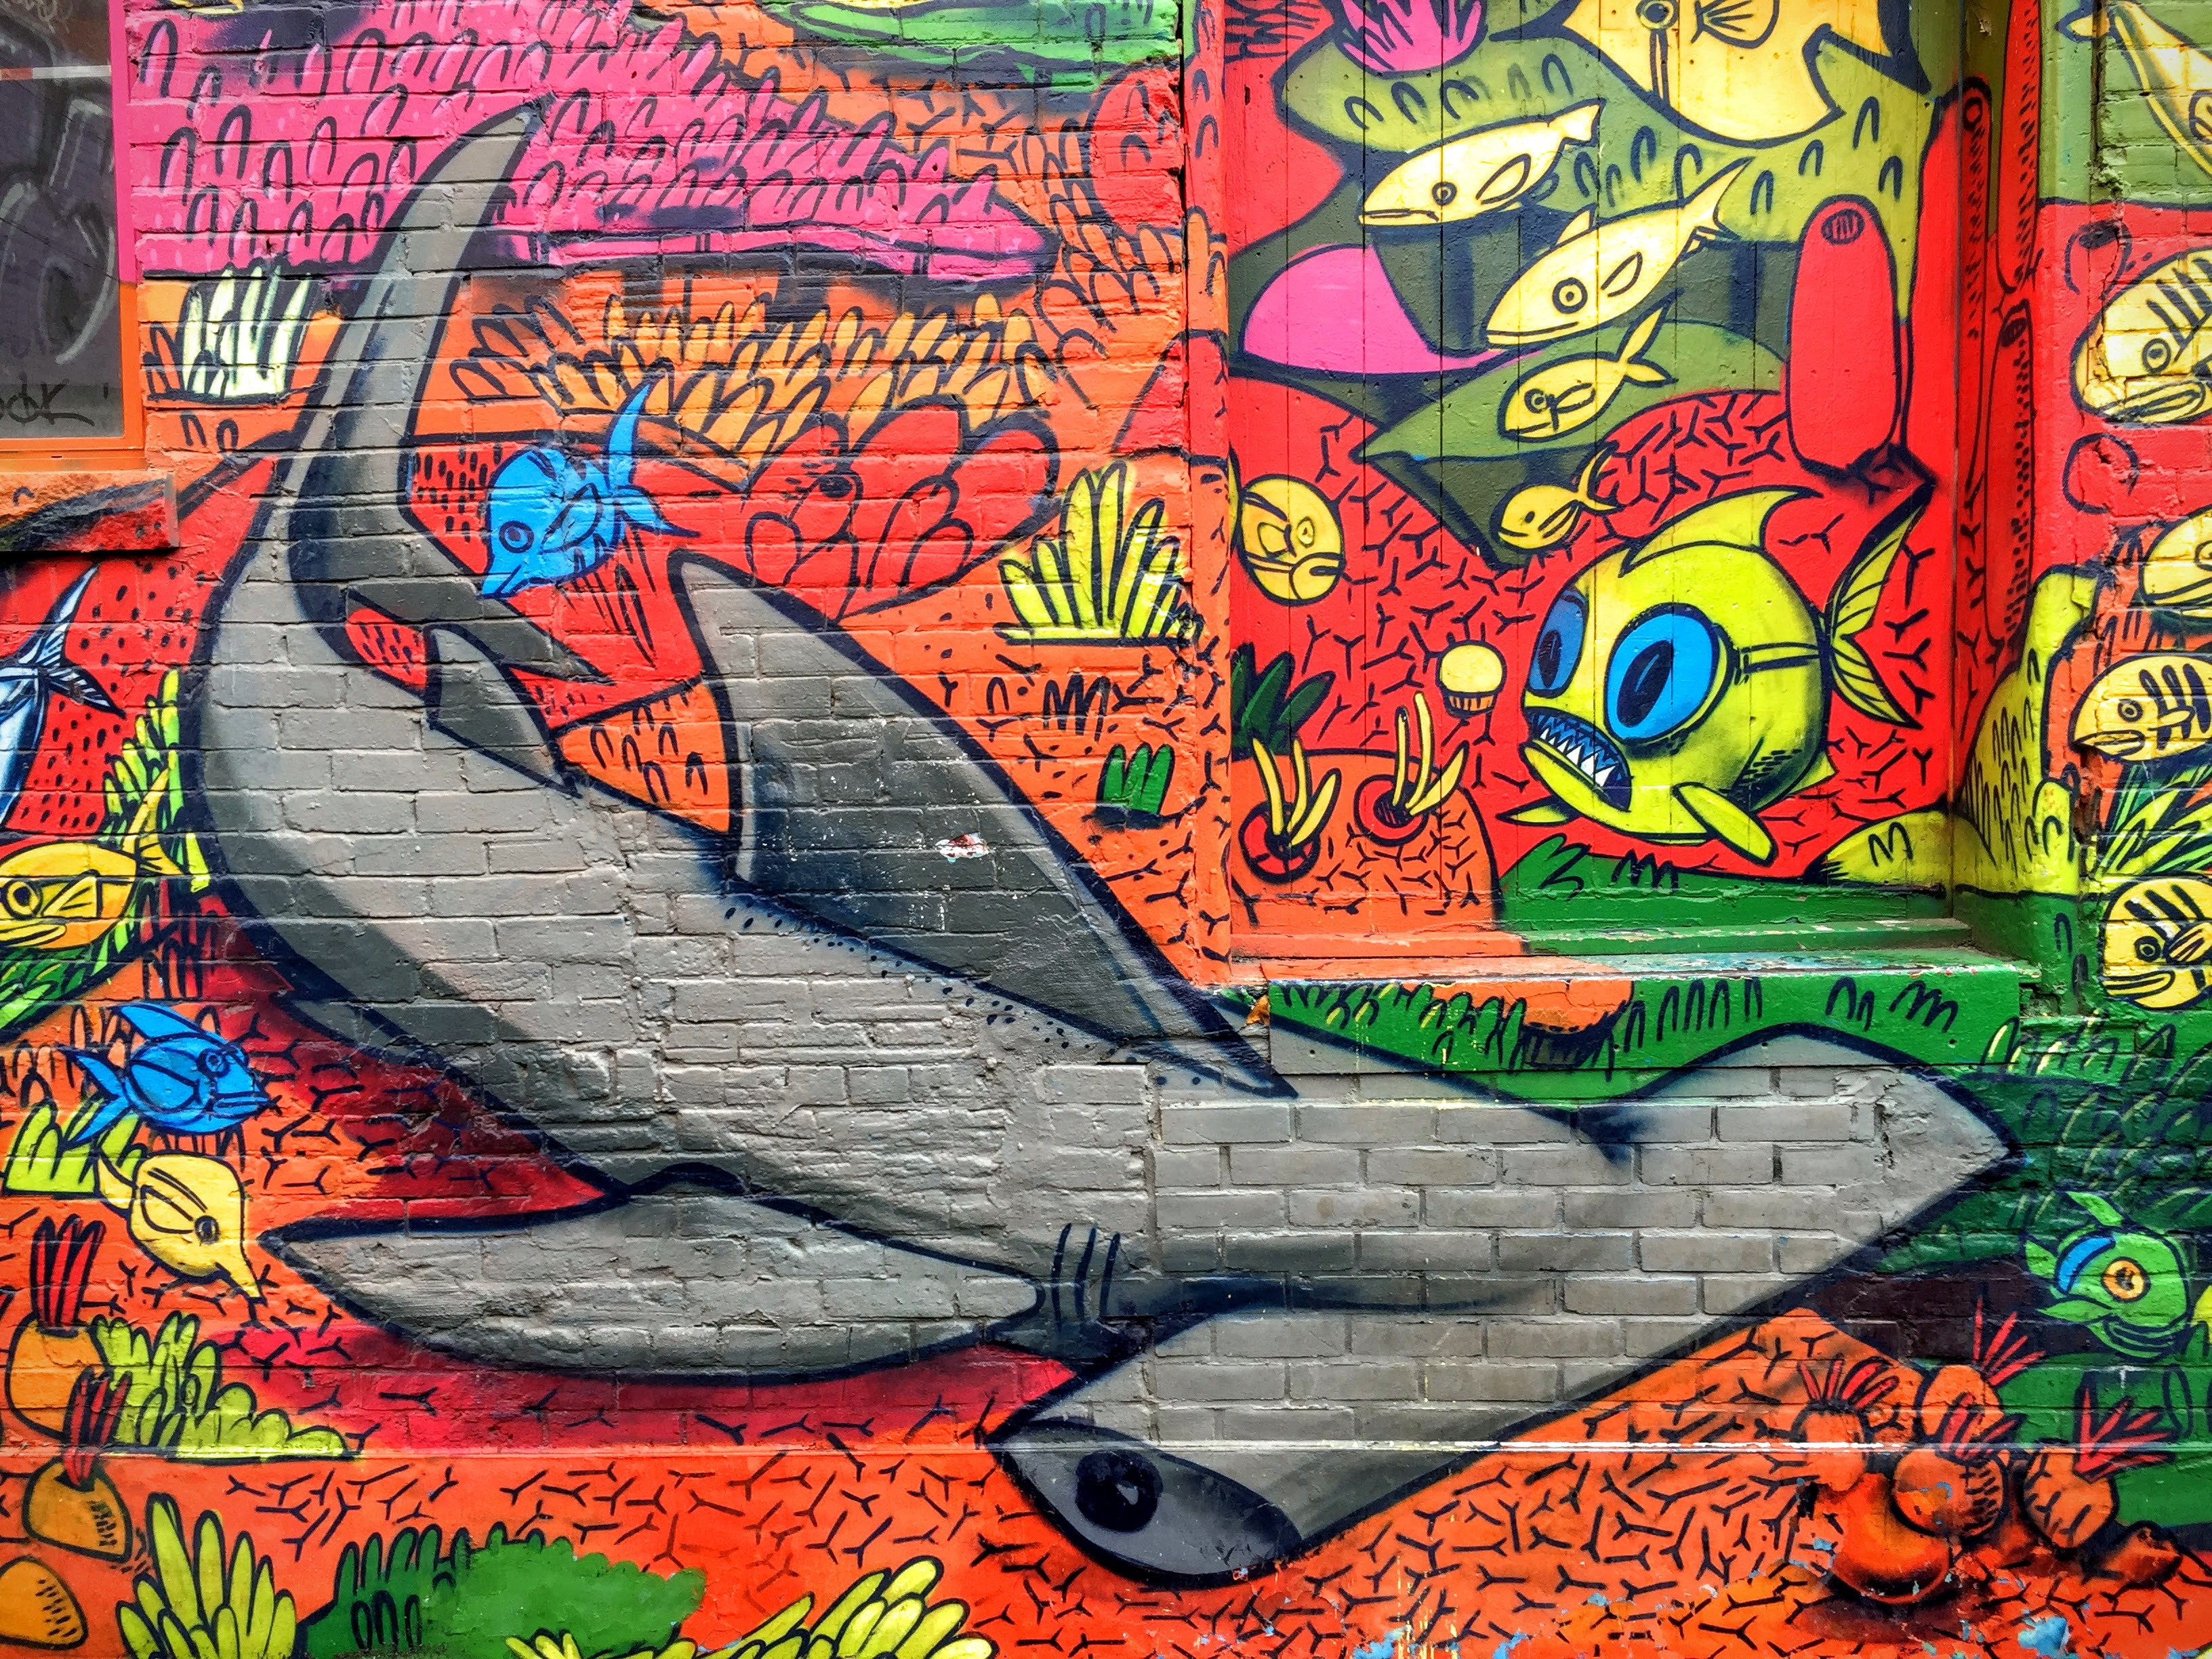 A photo of one of Toronto's iconic Graffiti Alley wall murals. Shot with the iPhone 6 Plus' stock rear-facing camera.